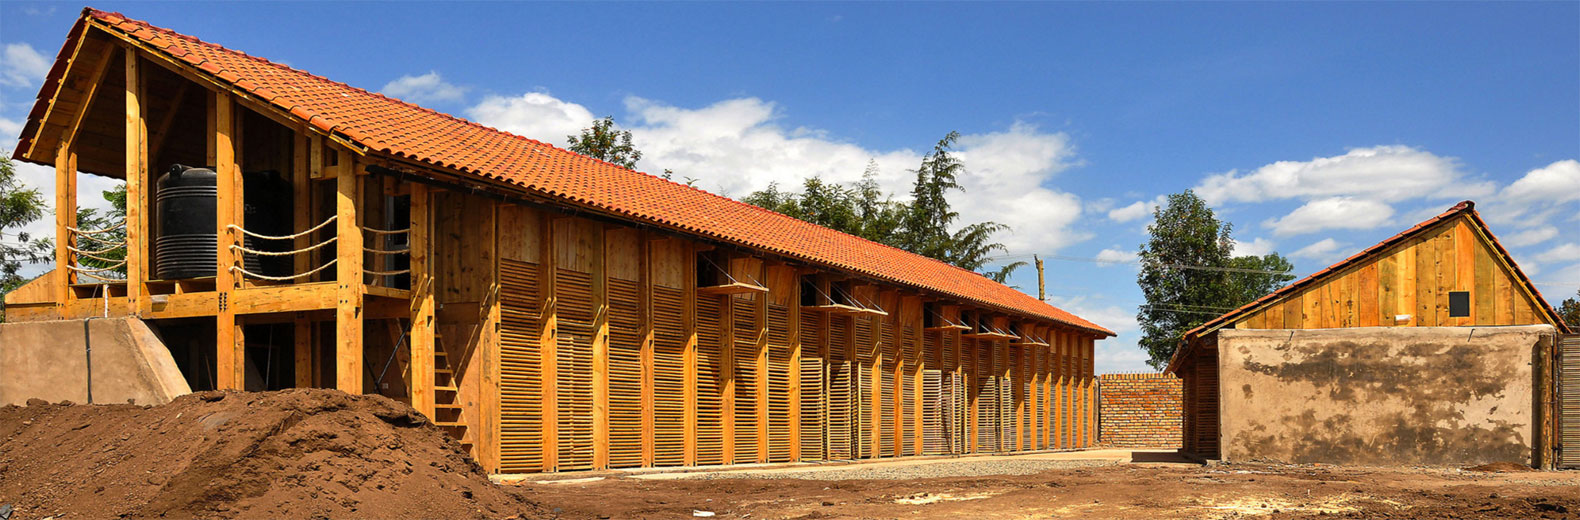 Rammed earth inhabitat green design innovation for Cost to build adobe home